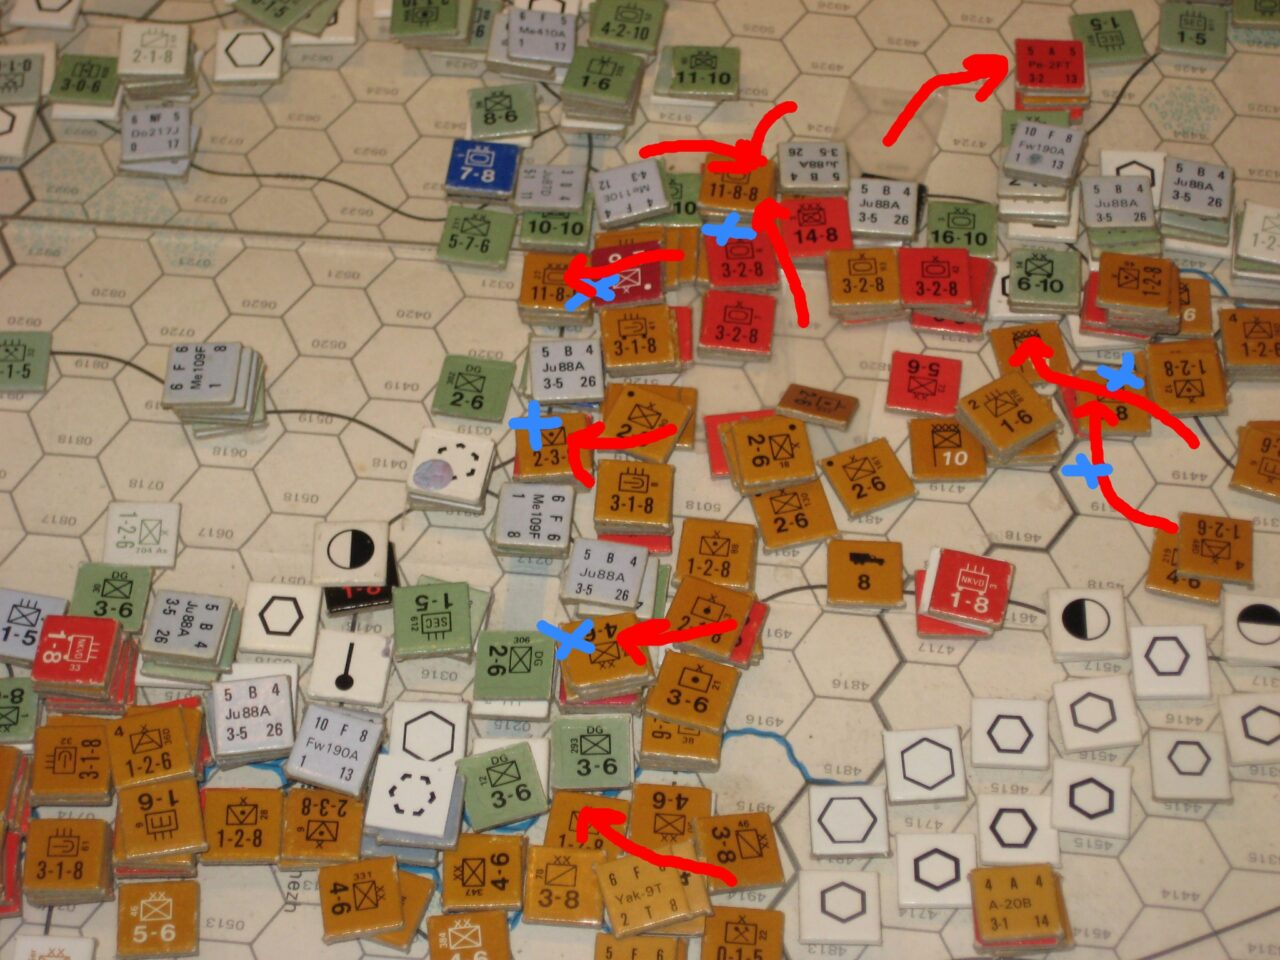 The Soviets rescue 9th Army and keep pushing West